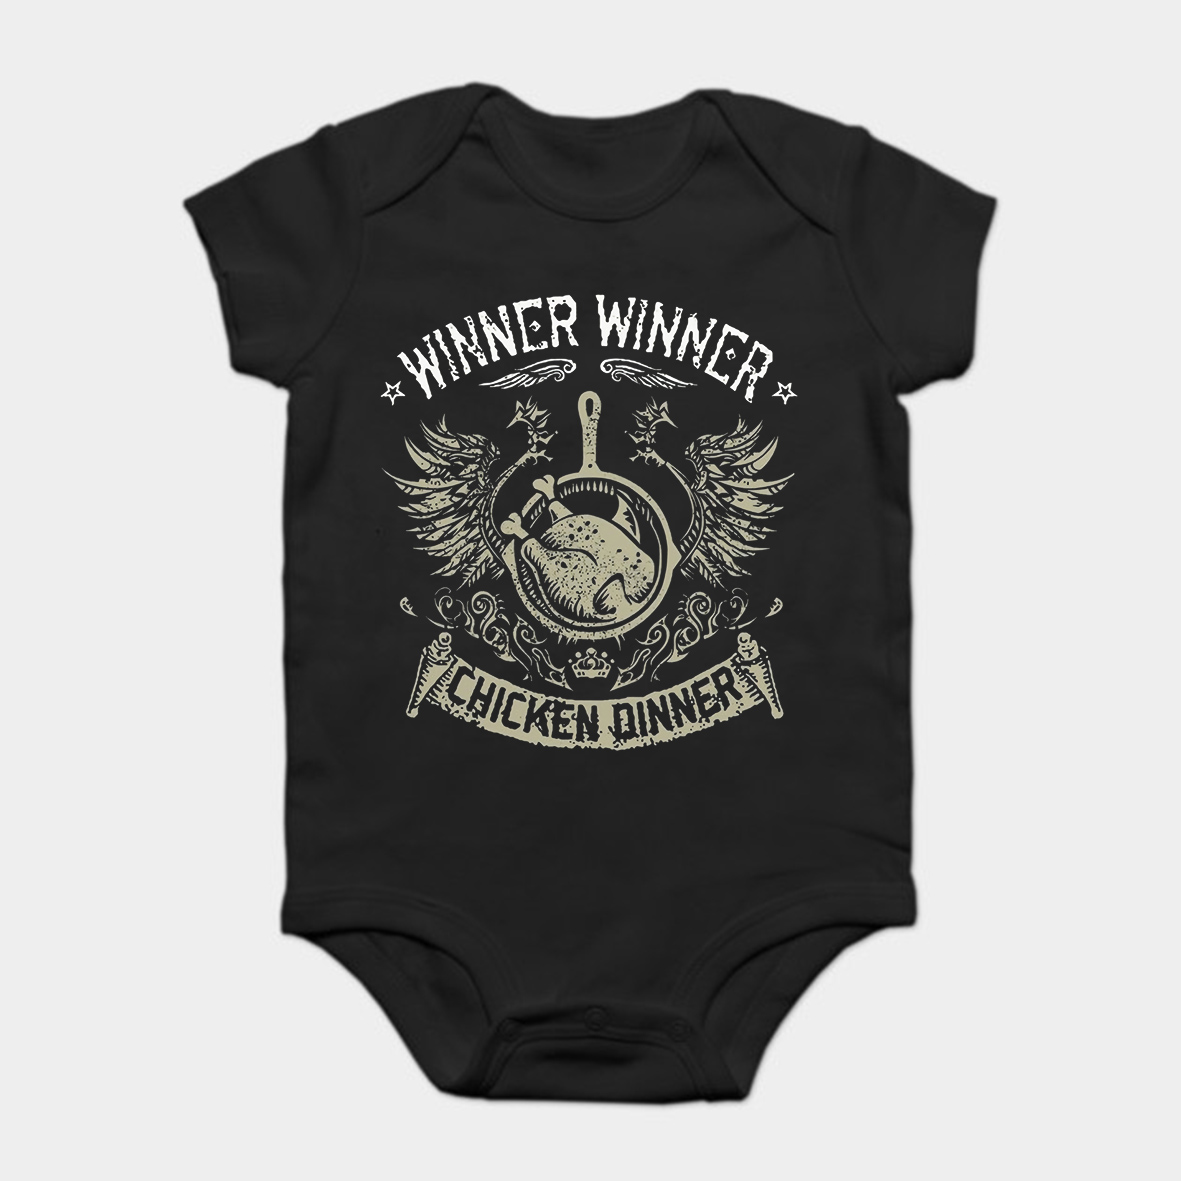 Constructive Baby Onesie Baby Bodysuits Kid T Shirt Fashion Cool Funny Pubg Wwcd Customized Printed